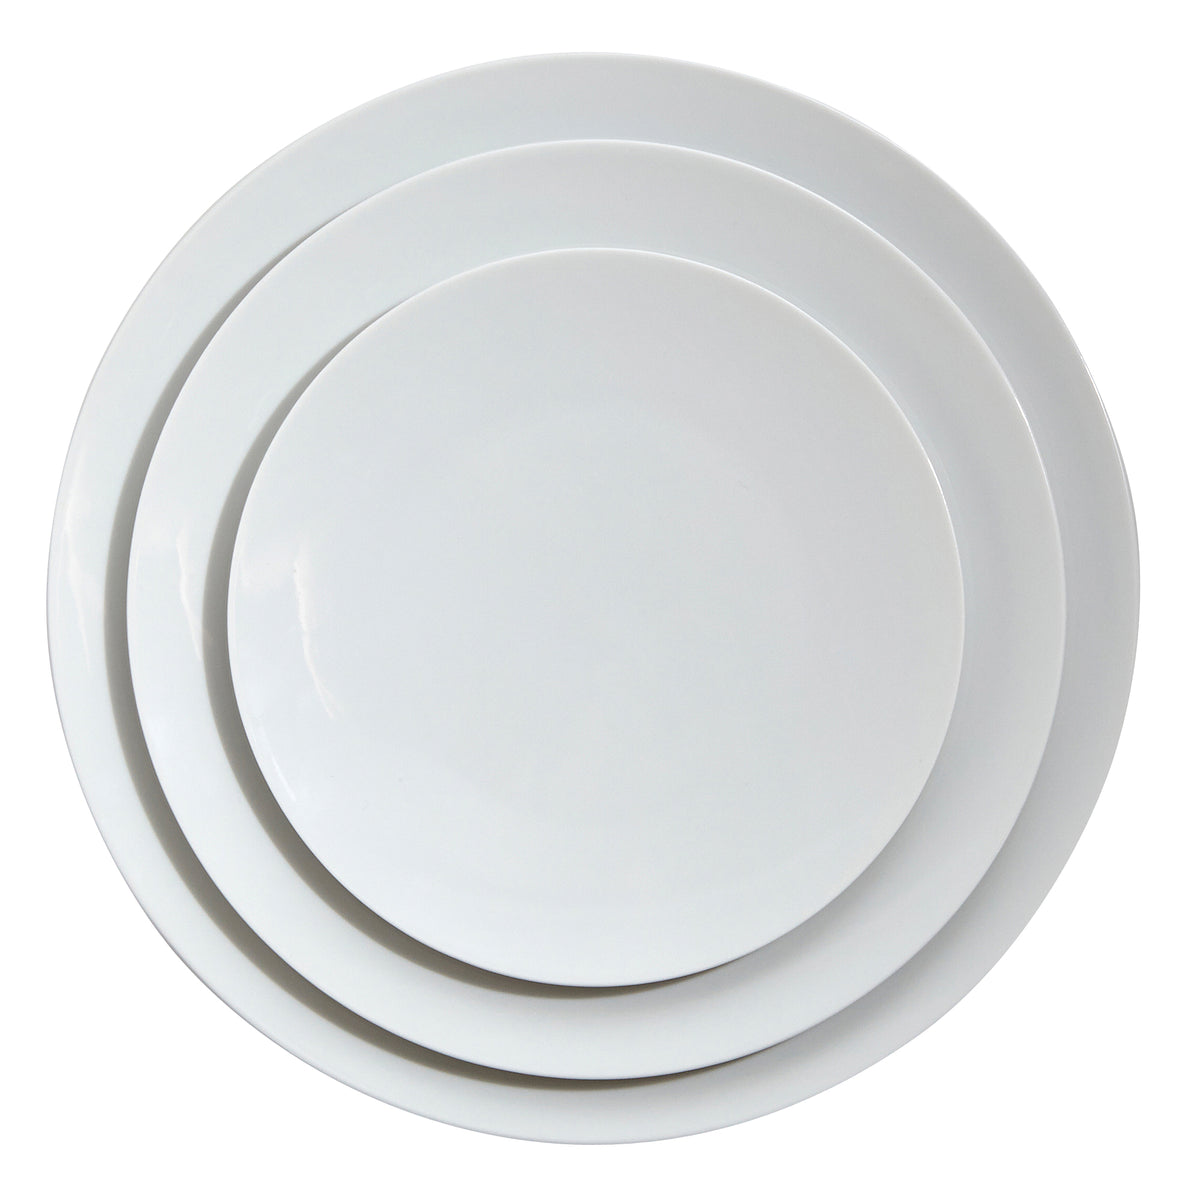 Tac 02 White Porcelain Service Plate